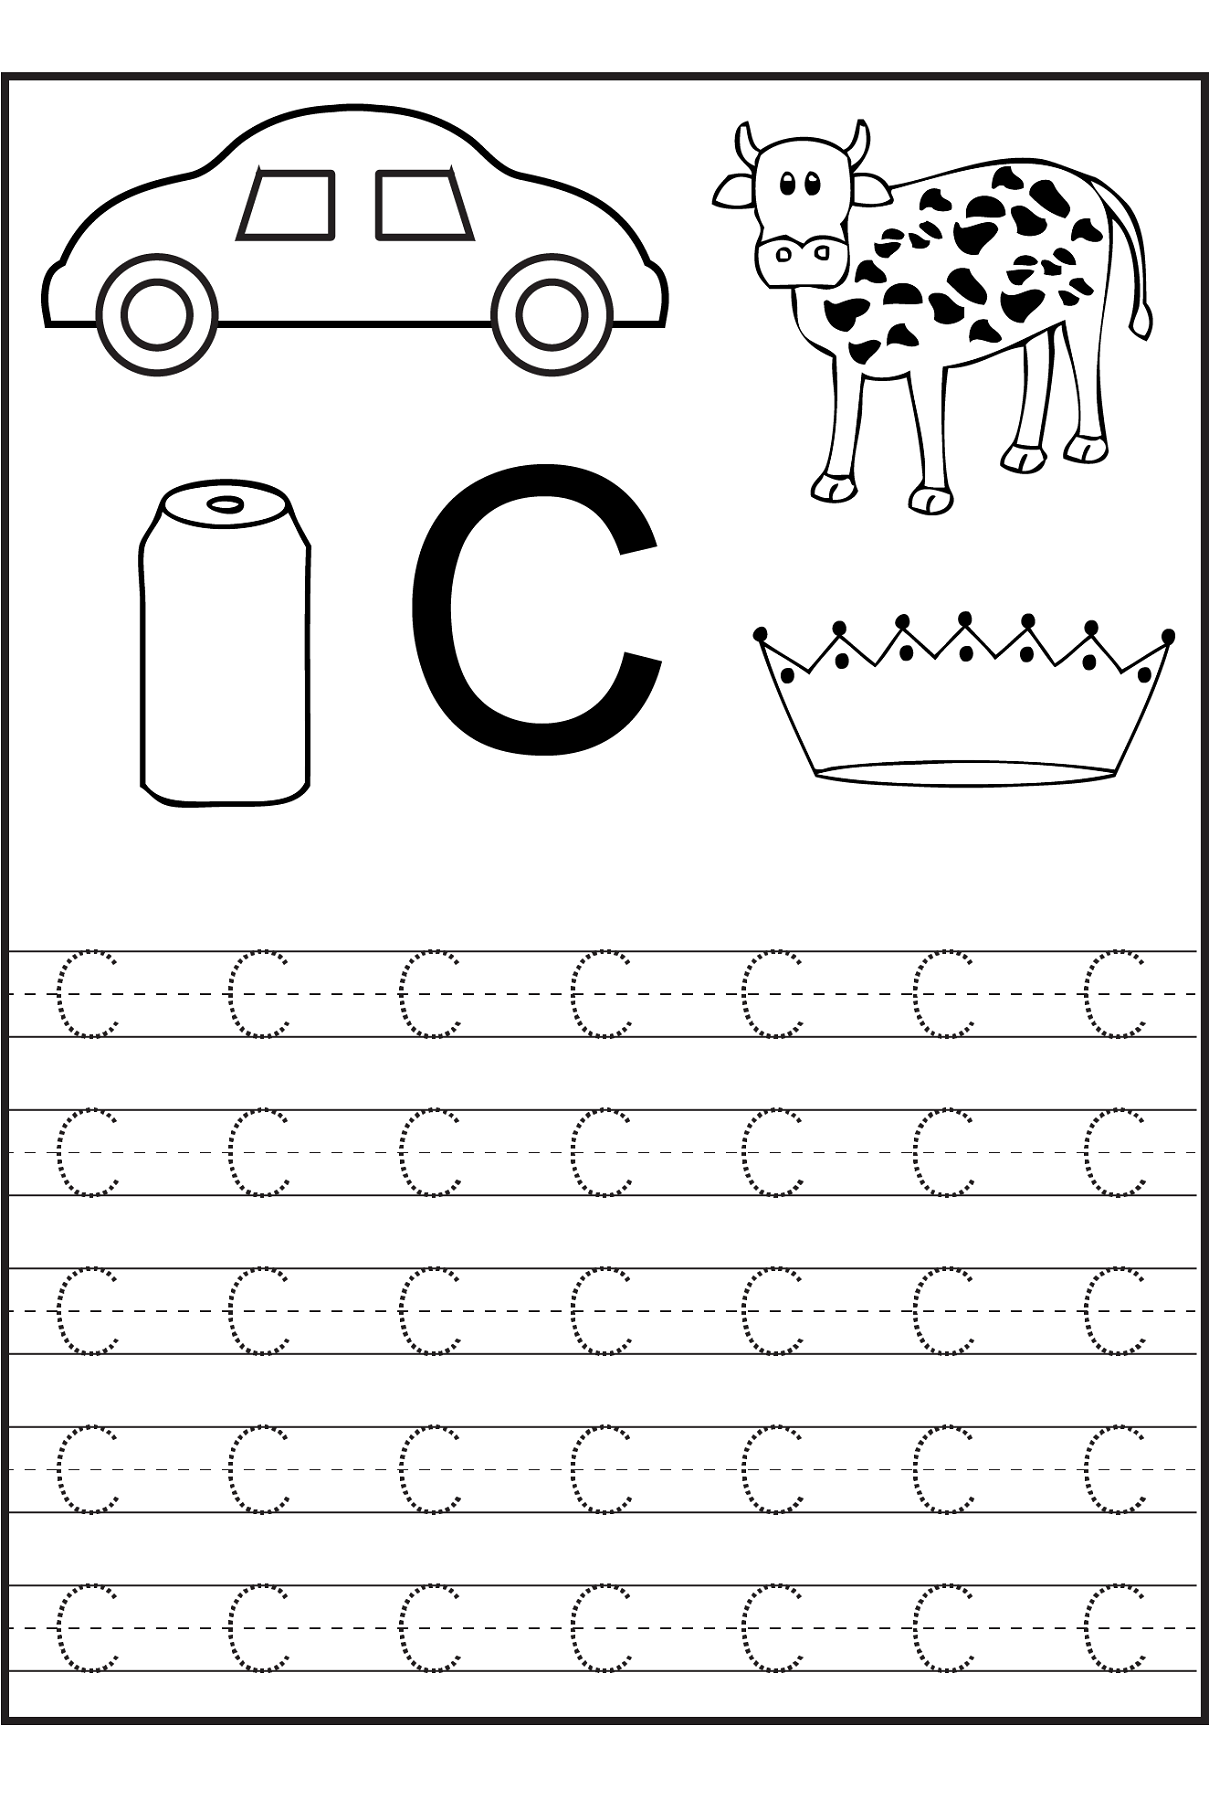 Worksheets Letter C Worksheets Preschool free trace the letter c simple preschool crafts simple